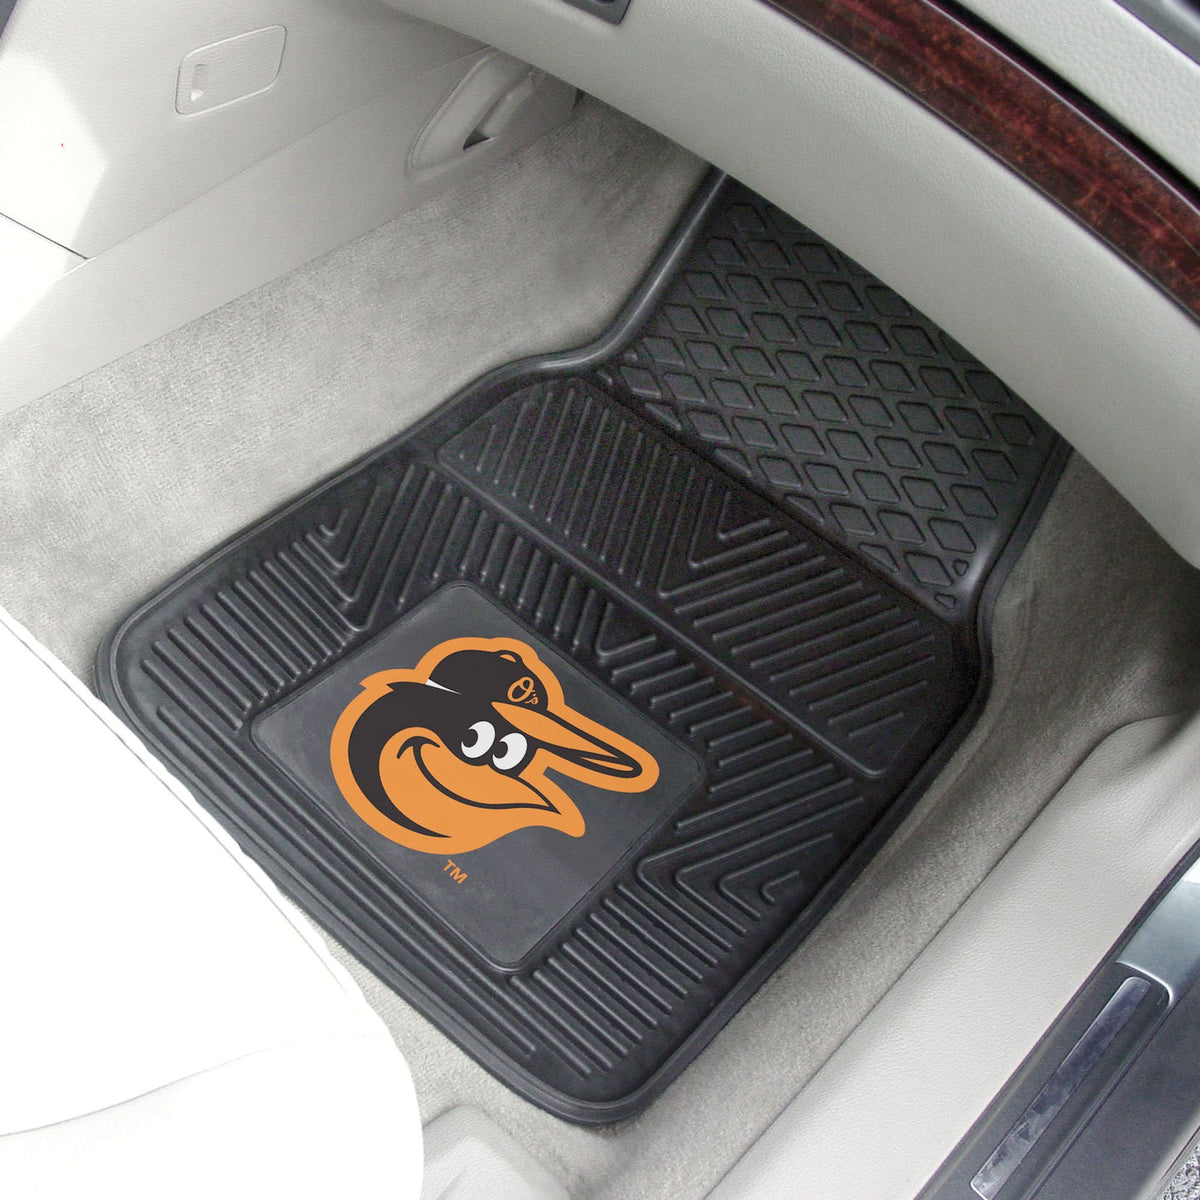 MLB - Vinyl Car Mat, 2-Piece Set MLB Mats, Front Car Mats, 2-pc Vinyl Car Mat Set, MLB, Auto Fan Mats Baltimore Orioles